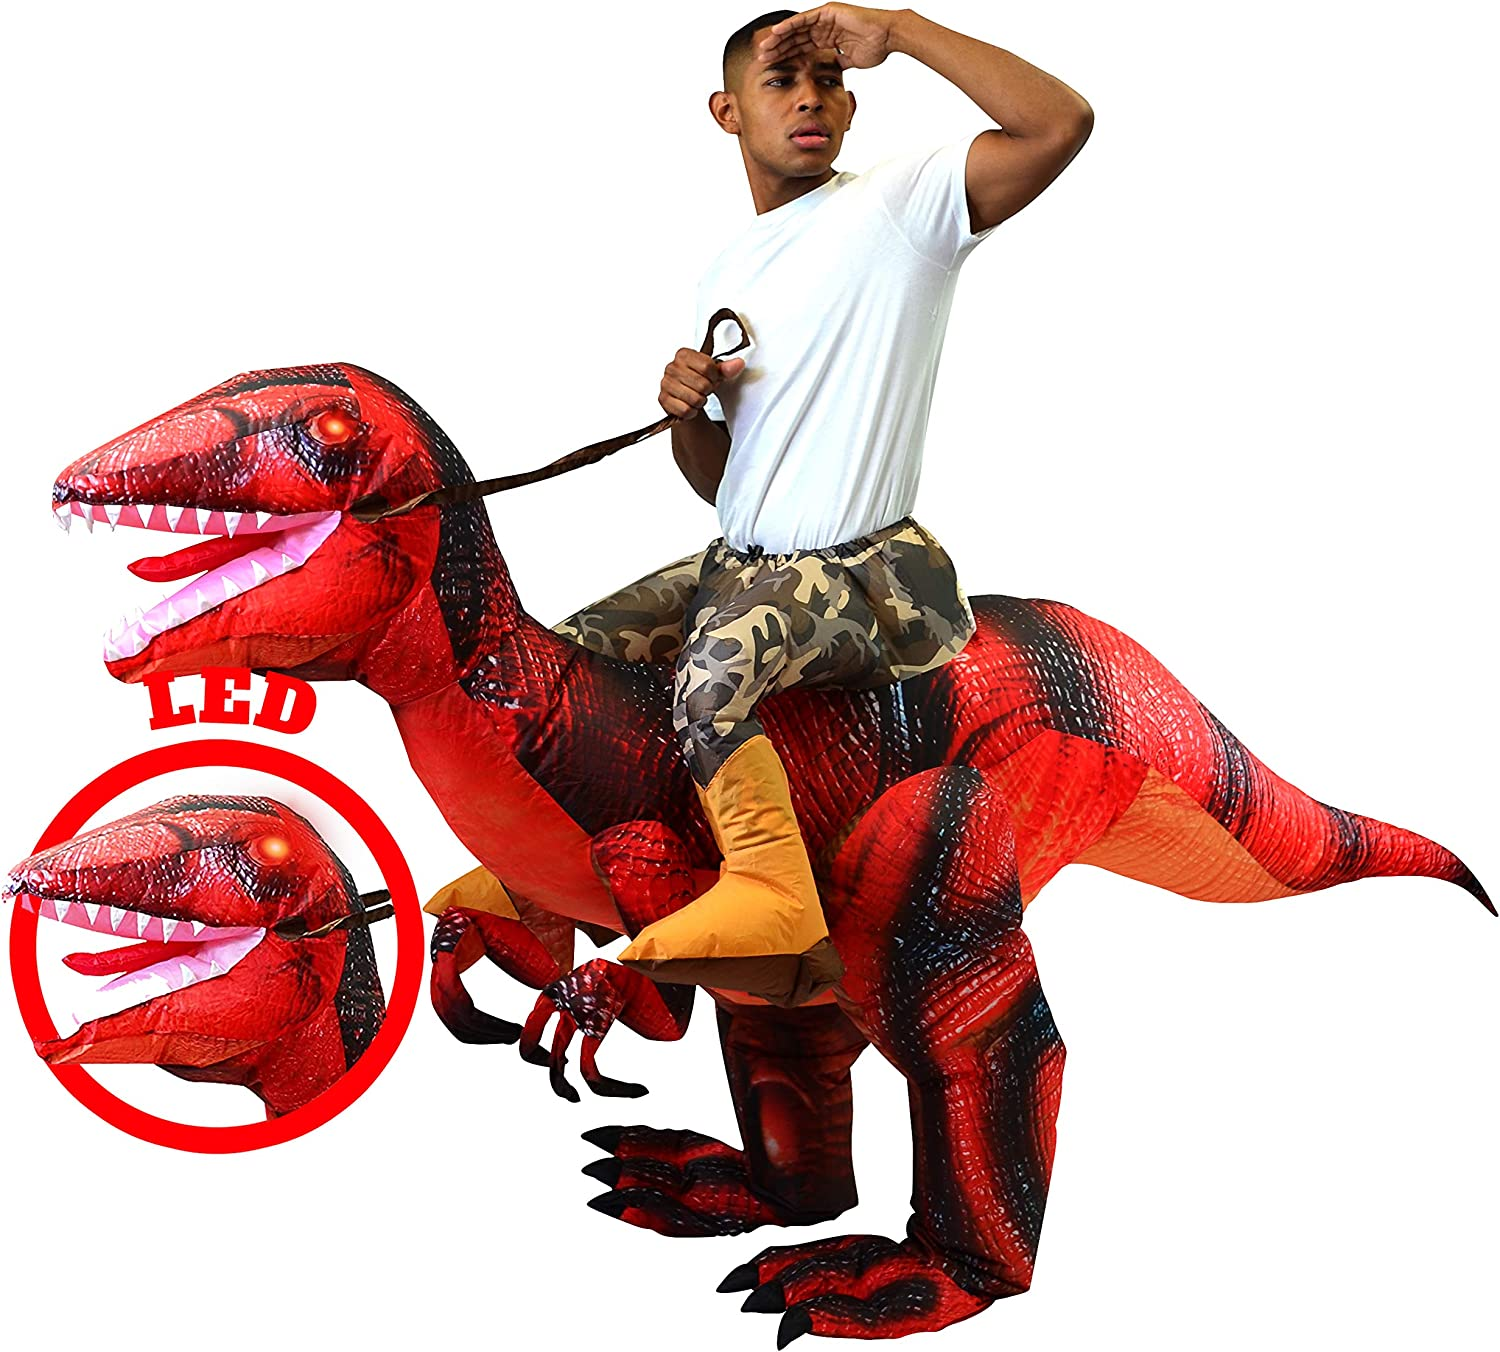 Spooktacular Creations Inflatable Raptor Riding a Raptor Dinosaur Deluxe Costume - Adult (Blue): Clothing